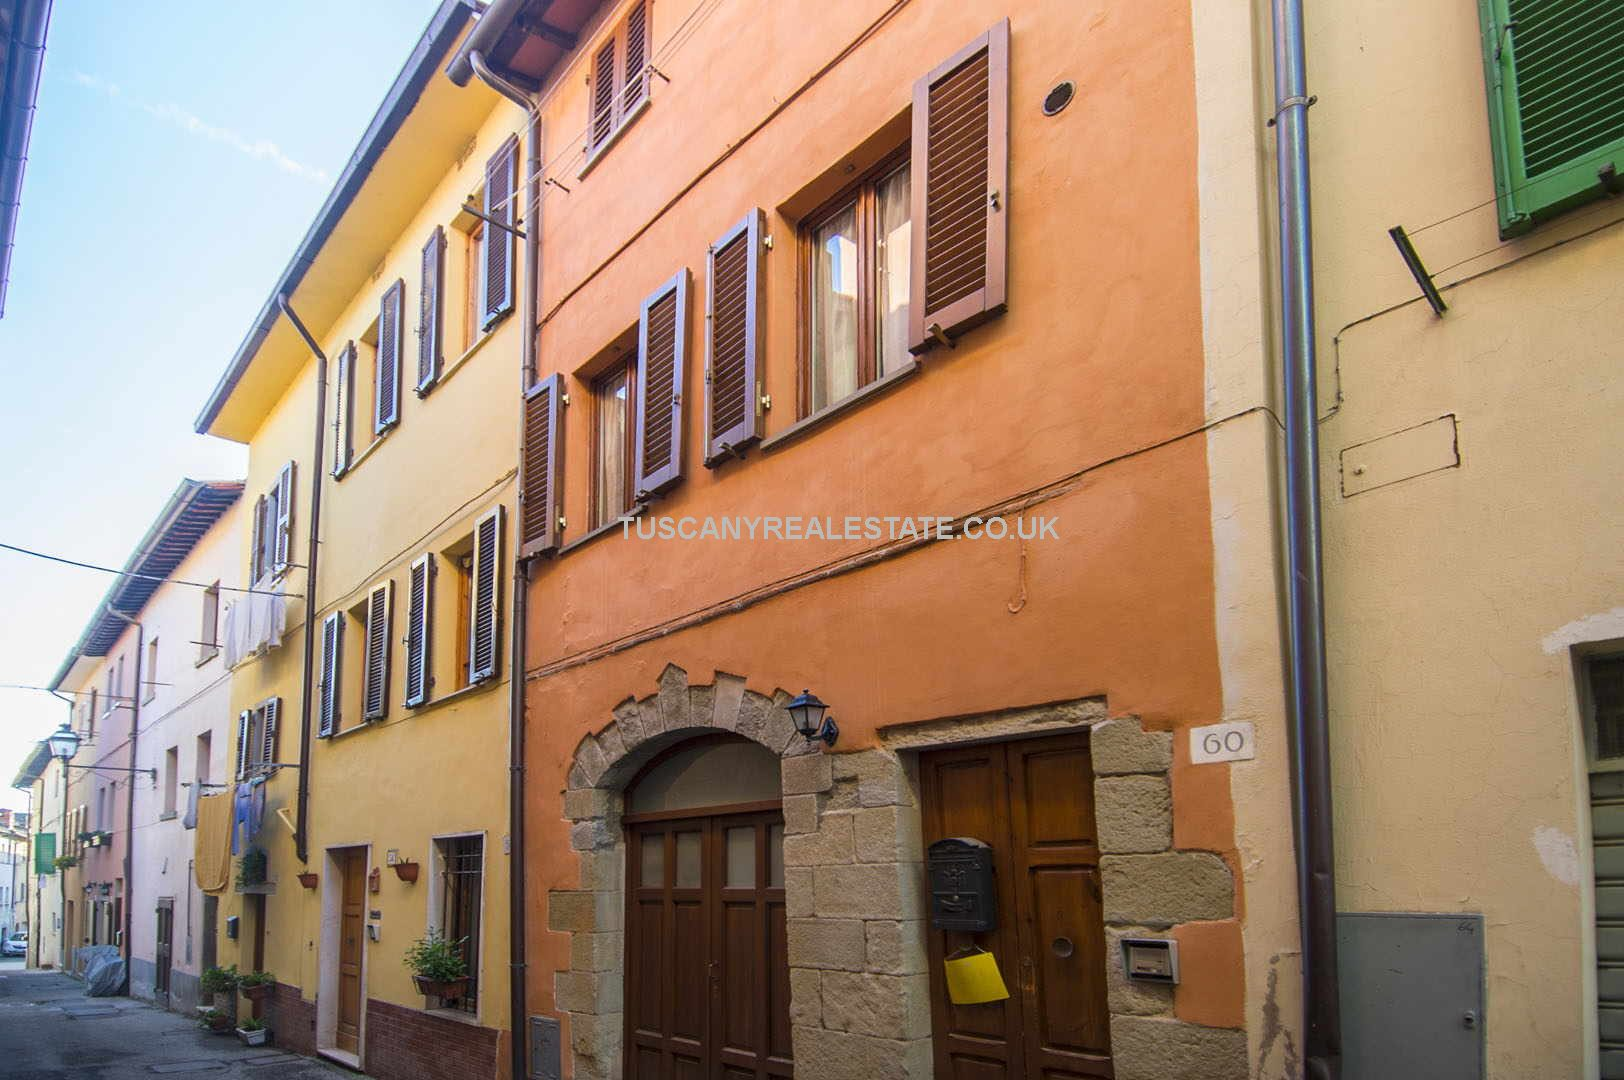 Town house for sale in Tuscany. Restored traditional townhouse property located near the main square in the Medieval town of Sansepolcro. One bedroom but possible for two. Ideal permanent or second home or holiday rental use catering to the Tuscan tourist trade.